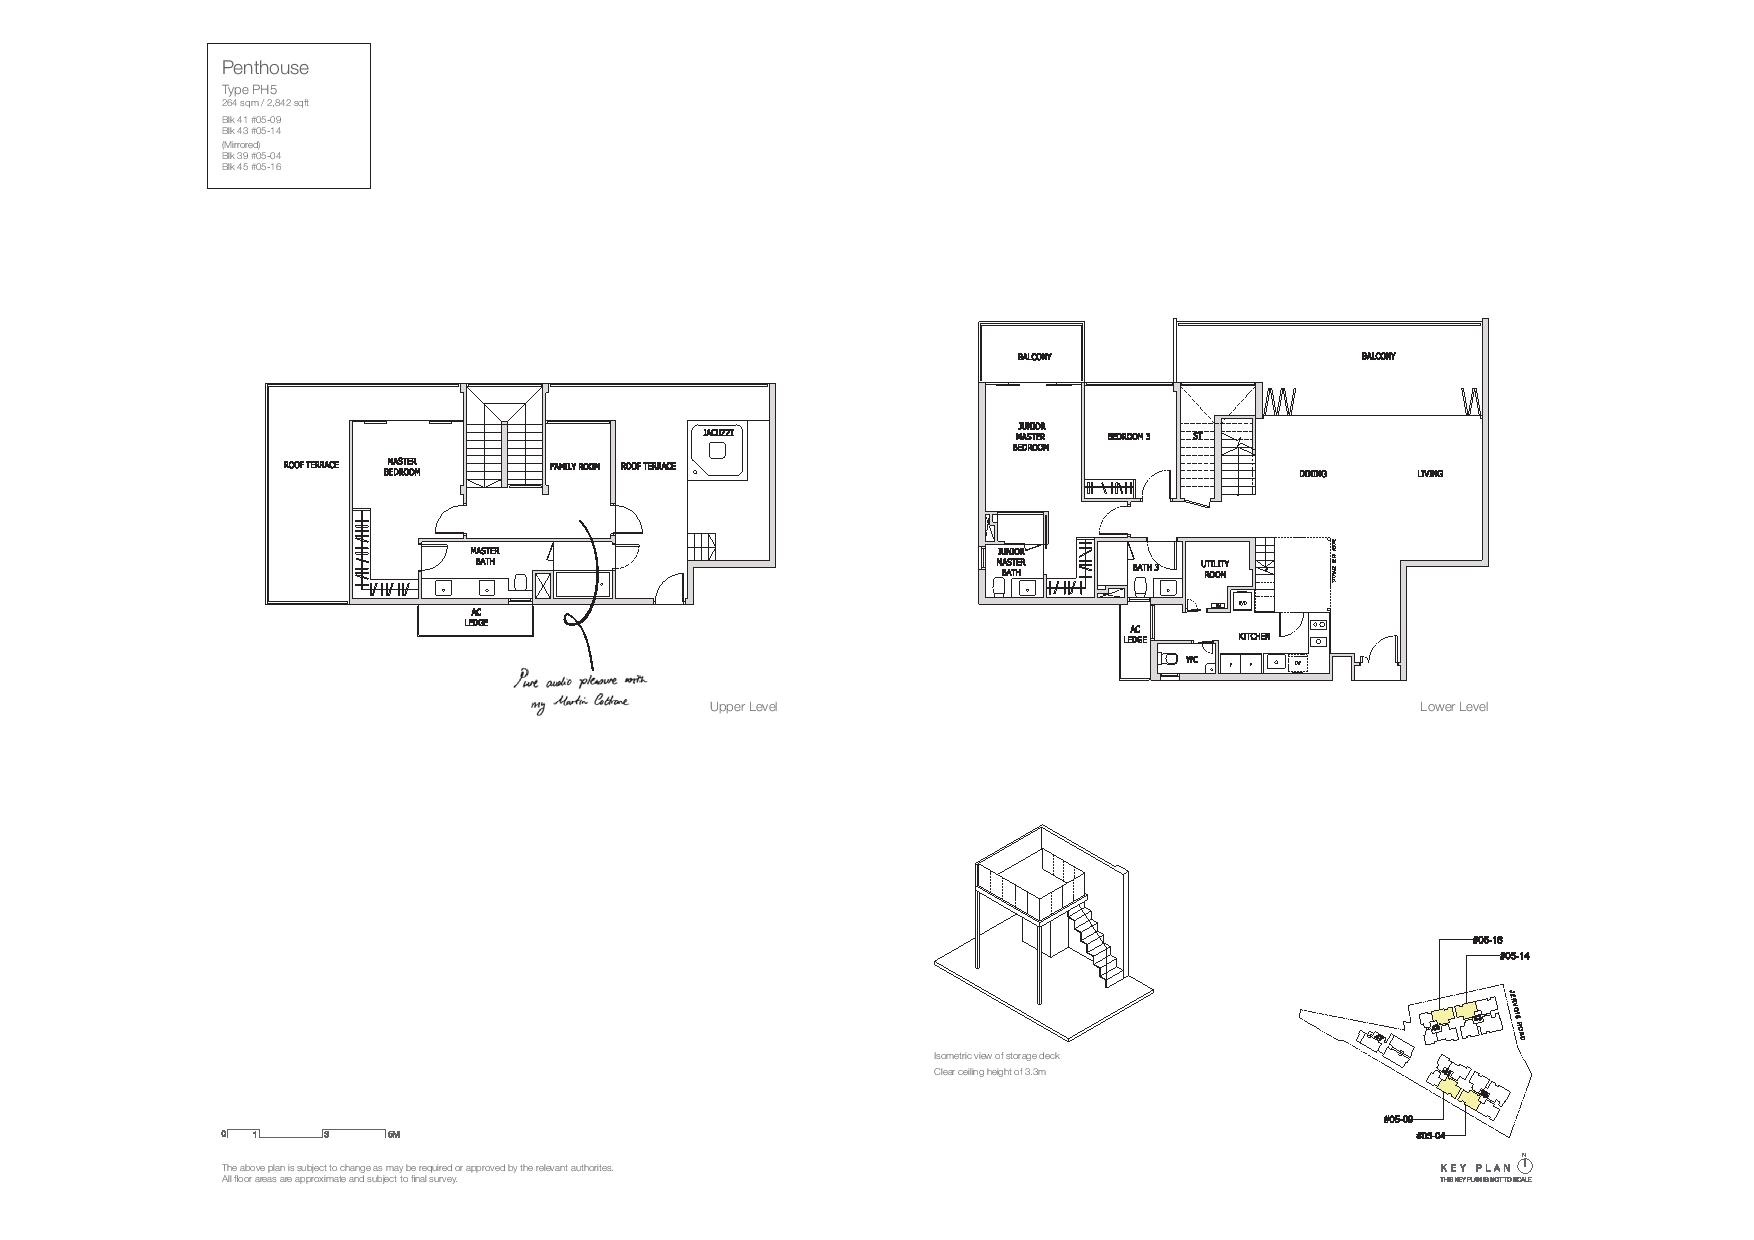 Mon Jervois Penthouse Floor Plans Type PH5